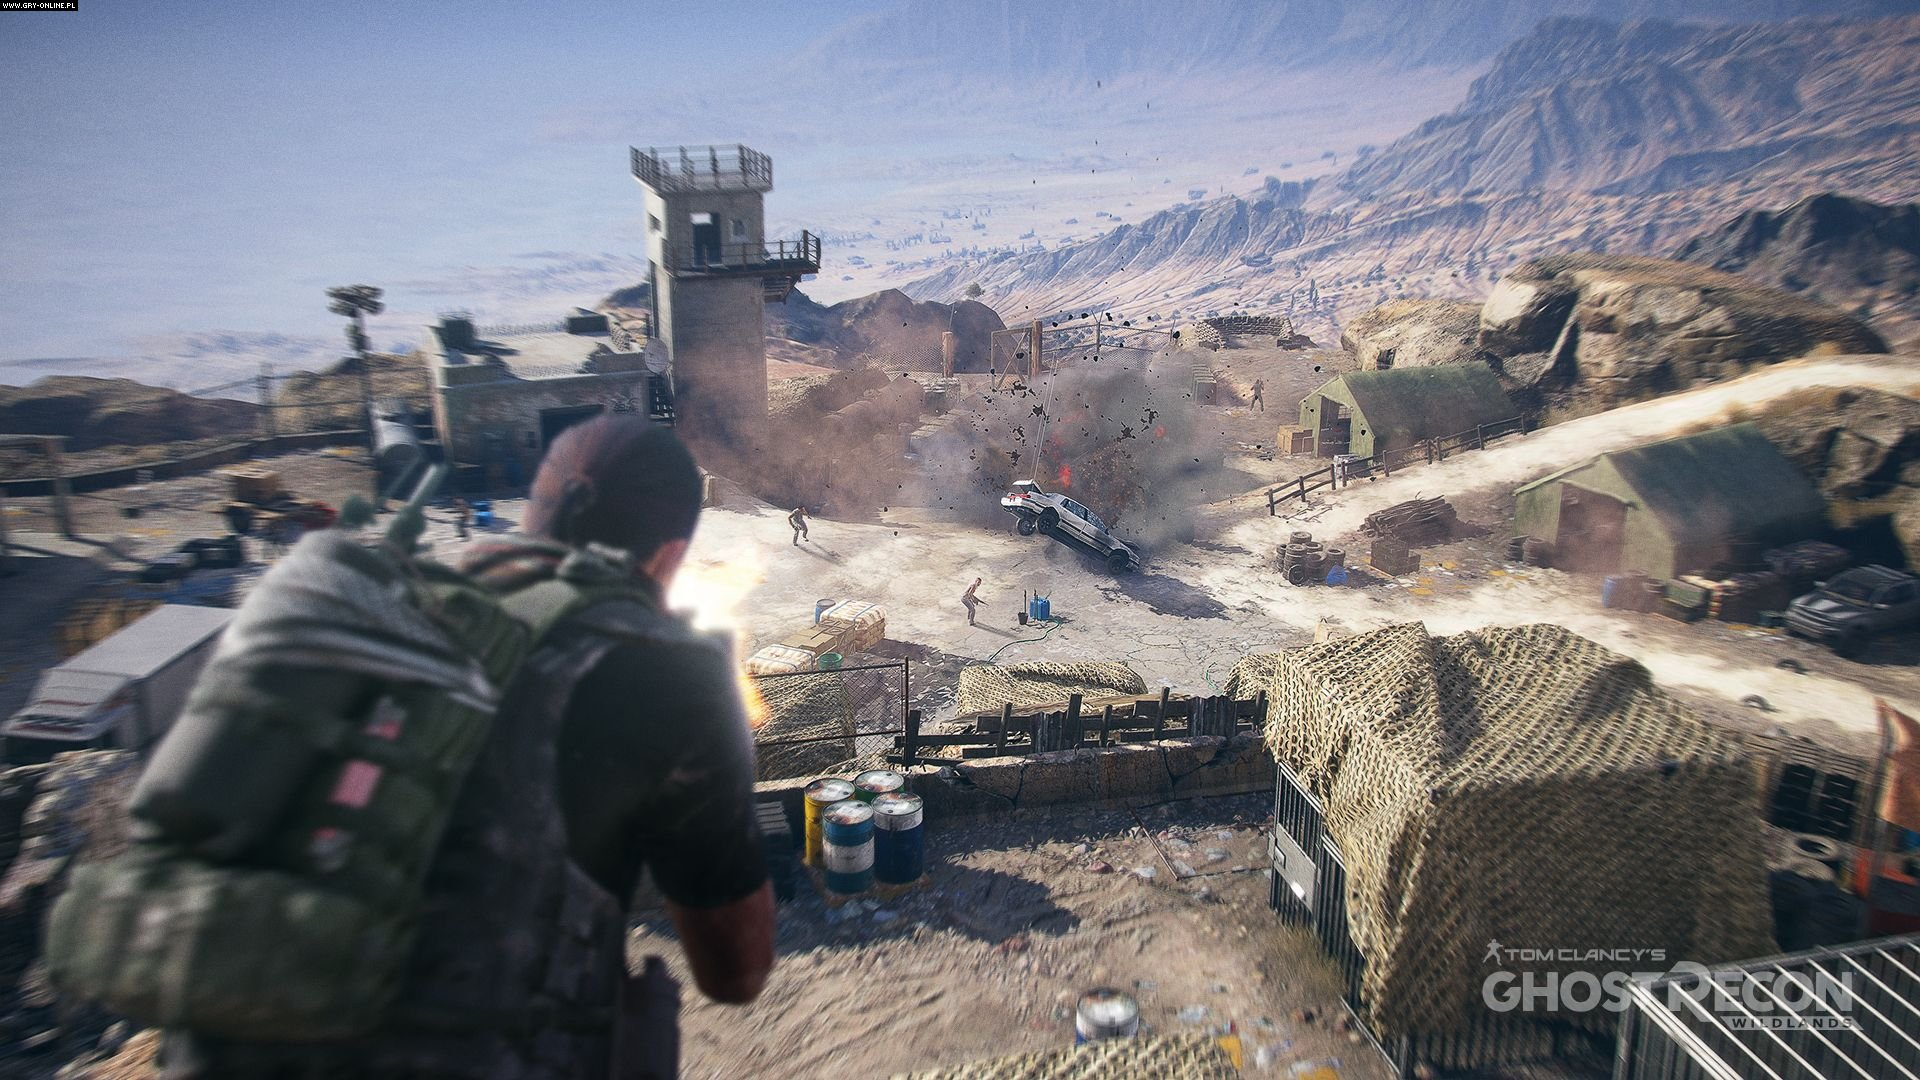 Tom Clancy's Ghost Recon: Wildlands PC, PS4, XONE Games Image 18/25, Ubisoft Studios, Ubisoft